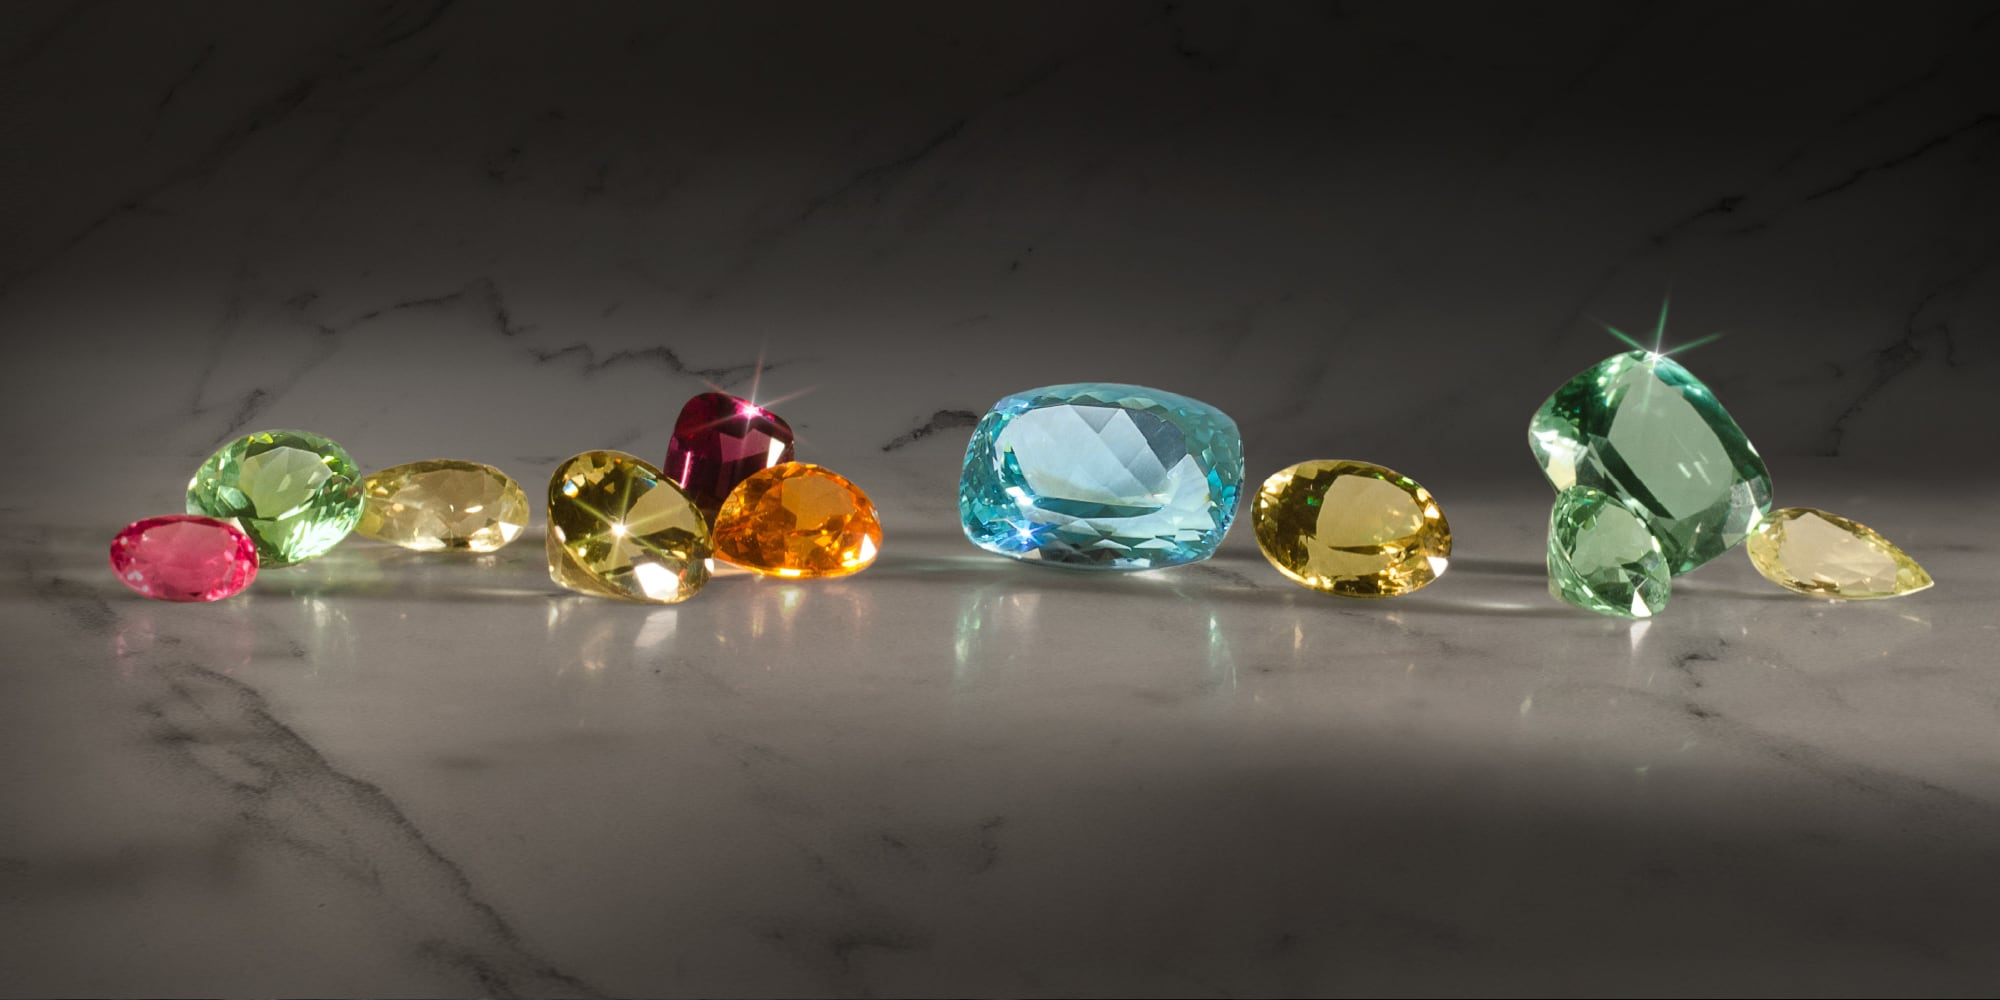 Gemstones on a marble slab